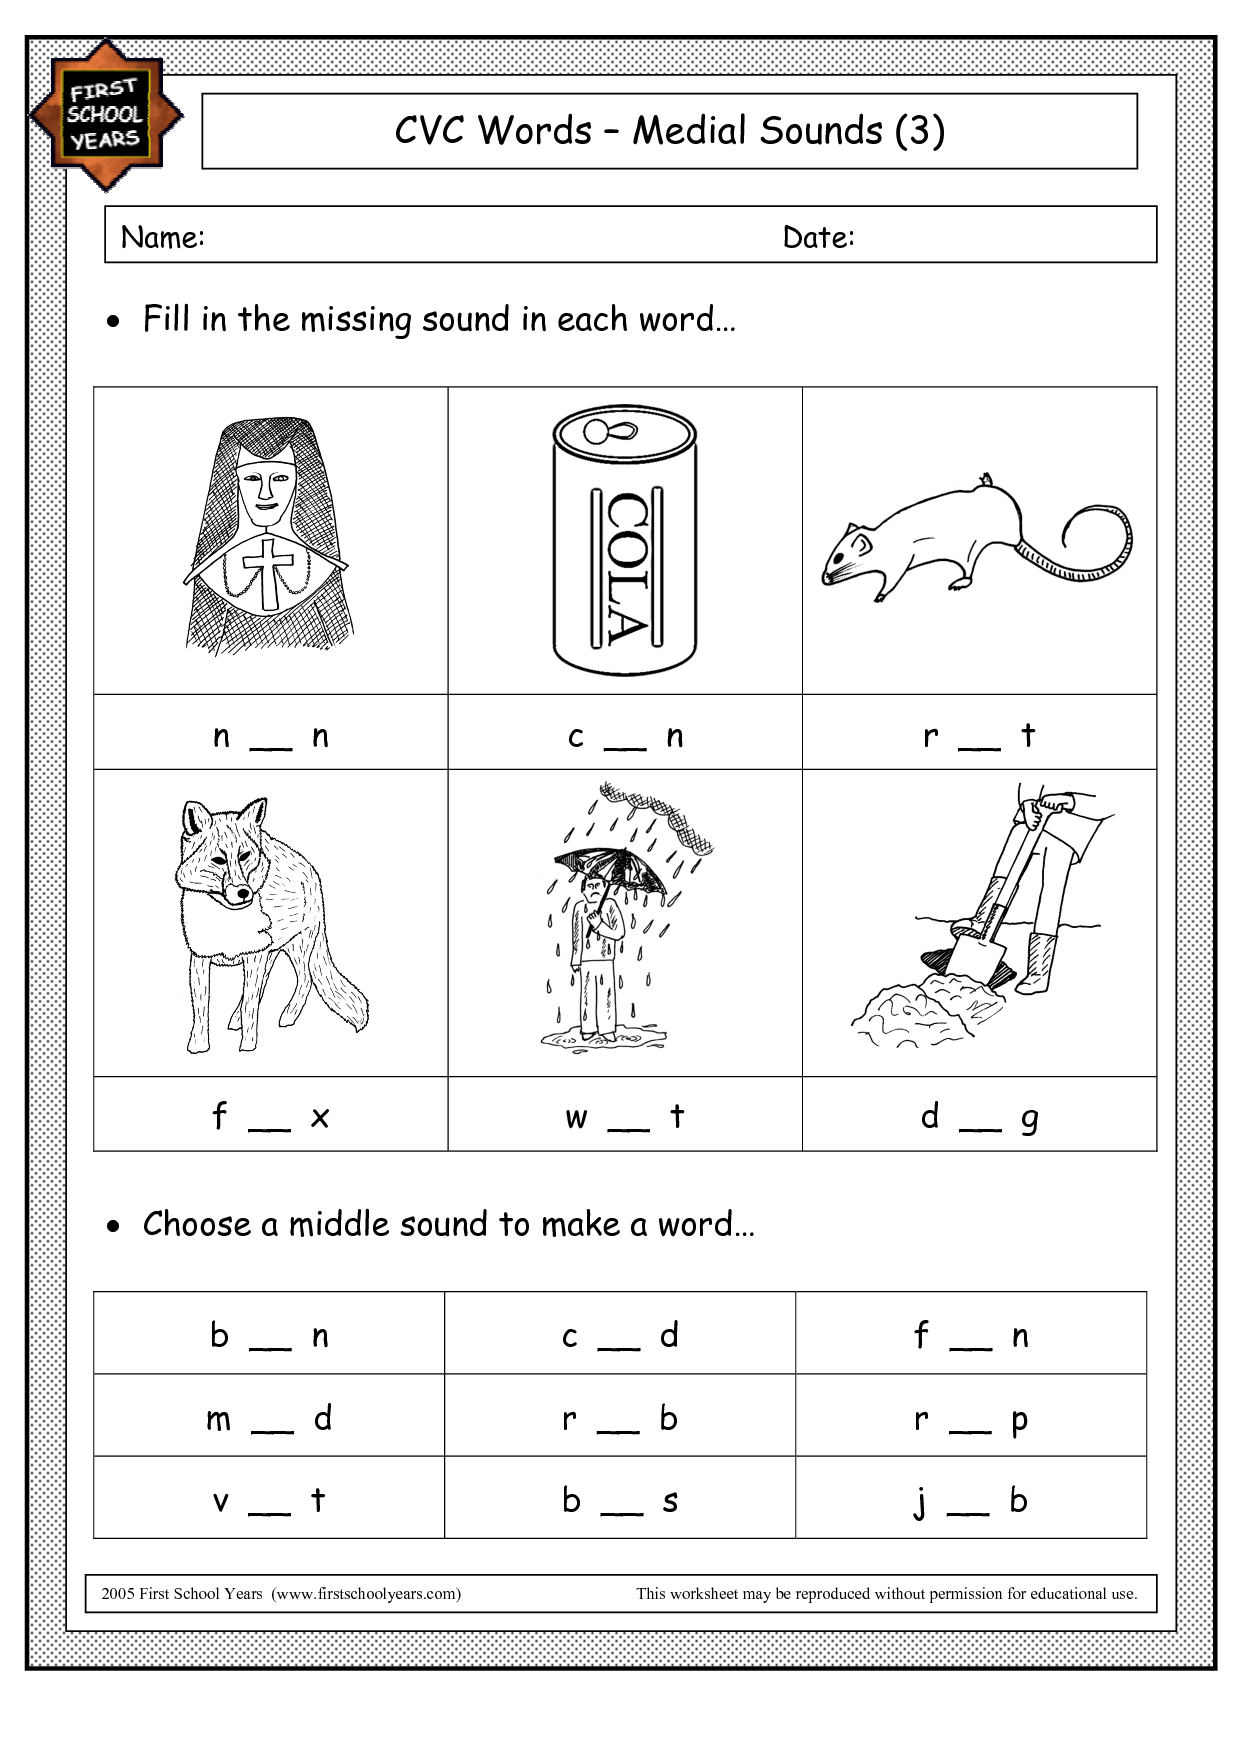 Middle Sound Worksheet Missing Letter